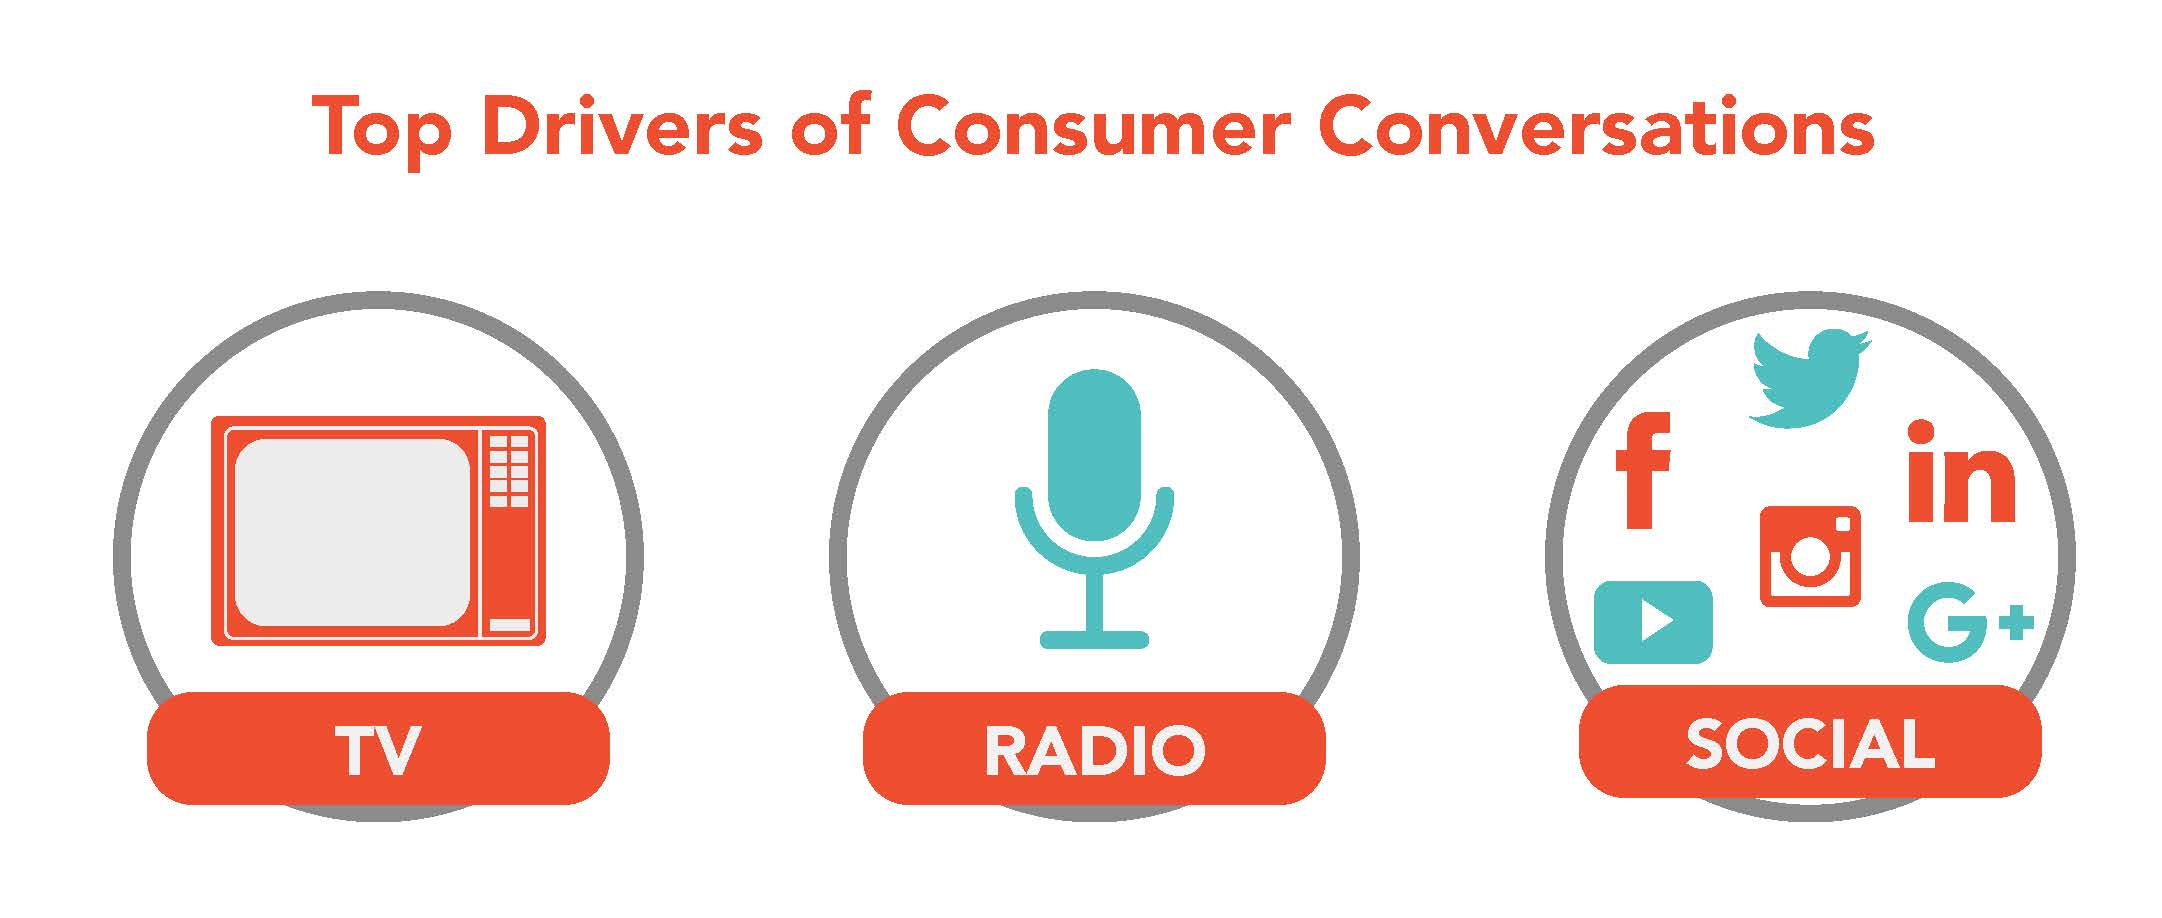 Top Drivers of Consumer Conversations